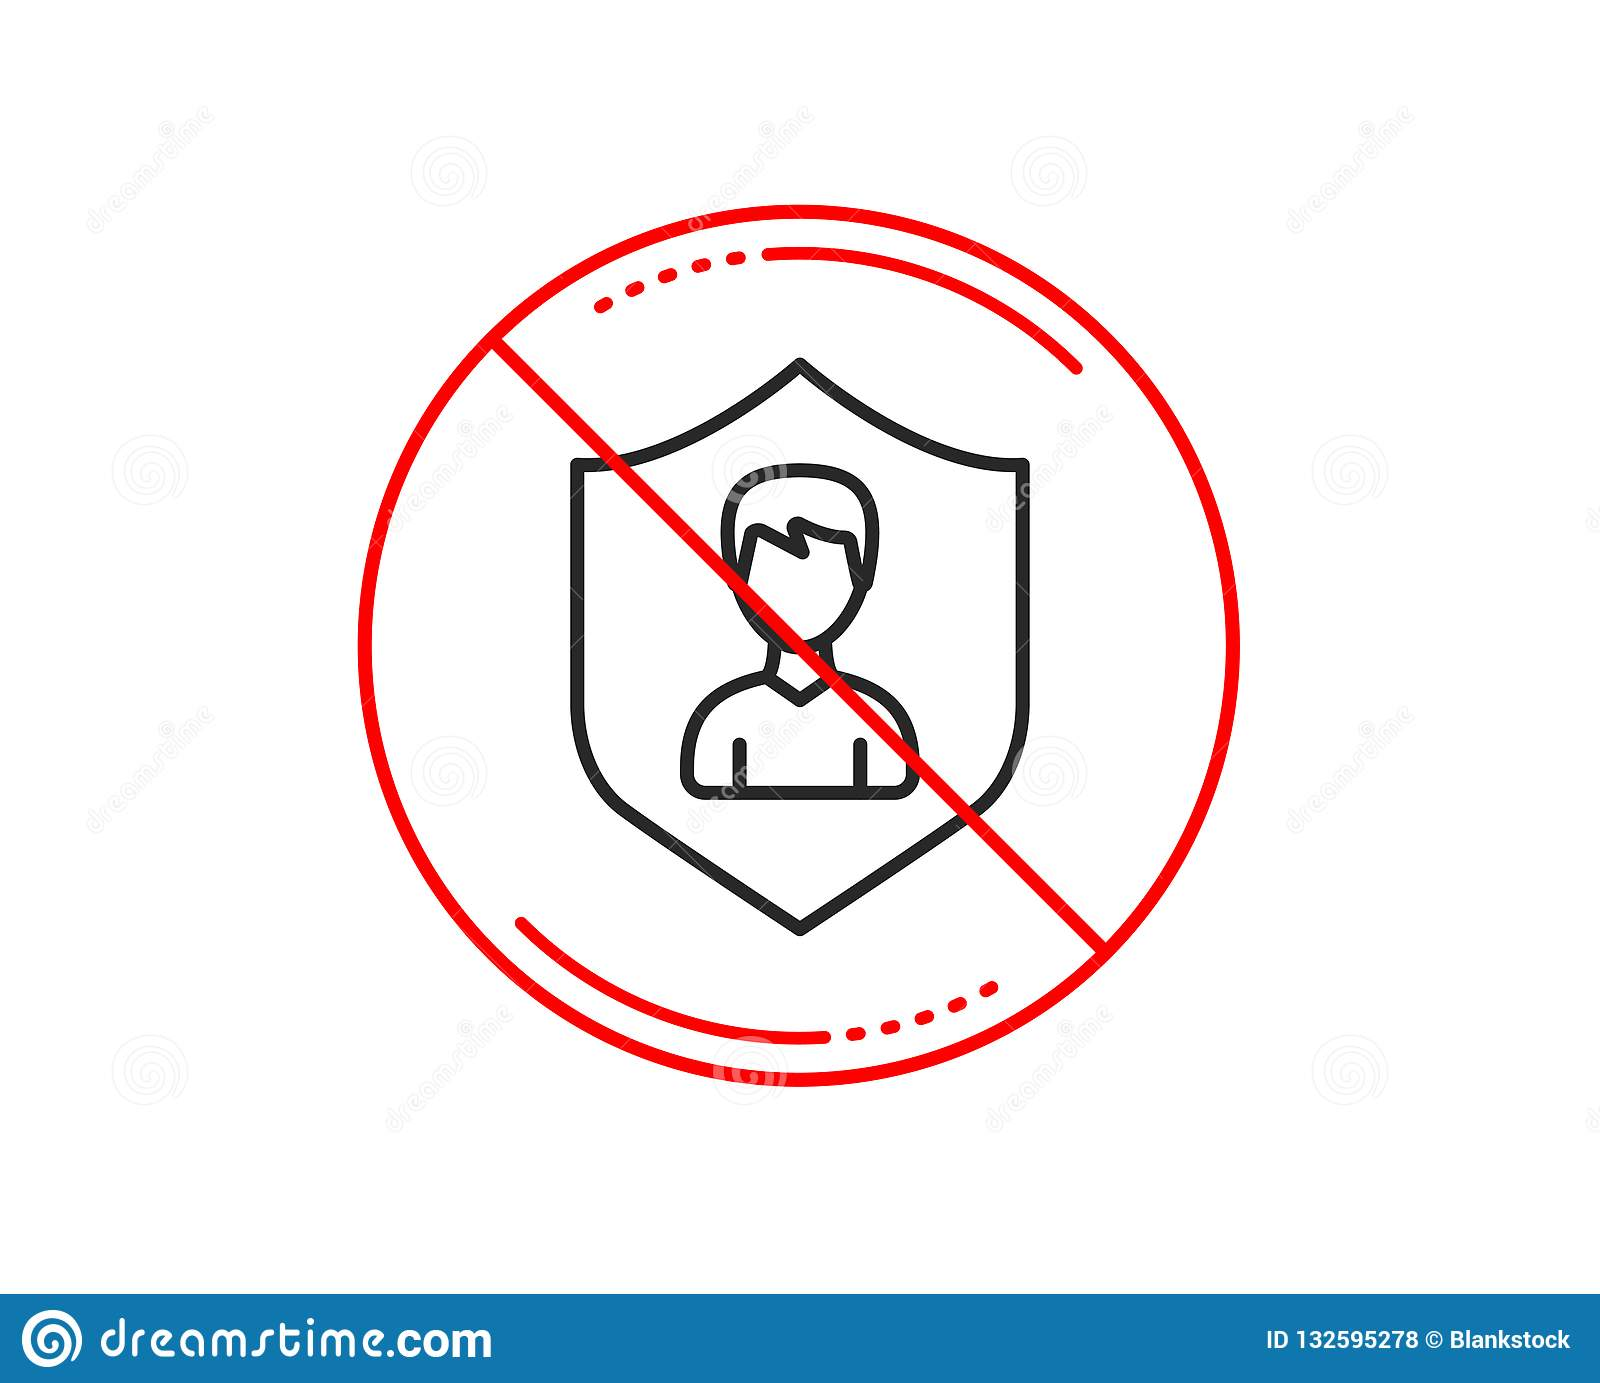 User Protection line icon. Male Profile sign. Vector